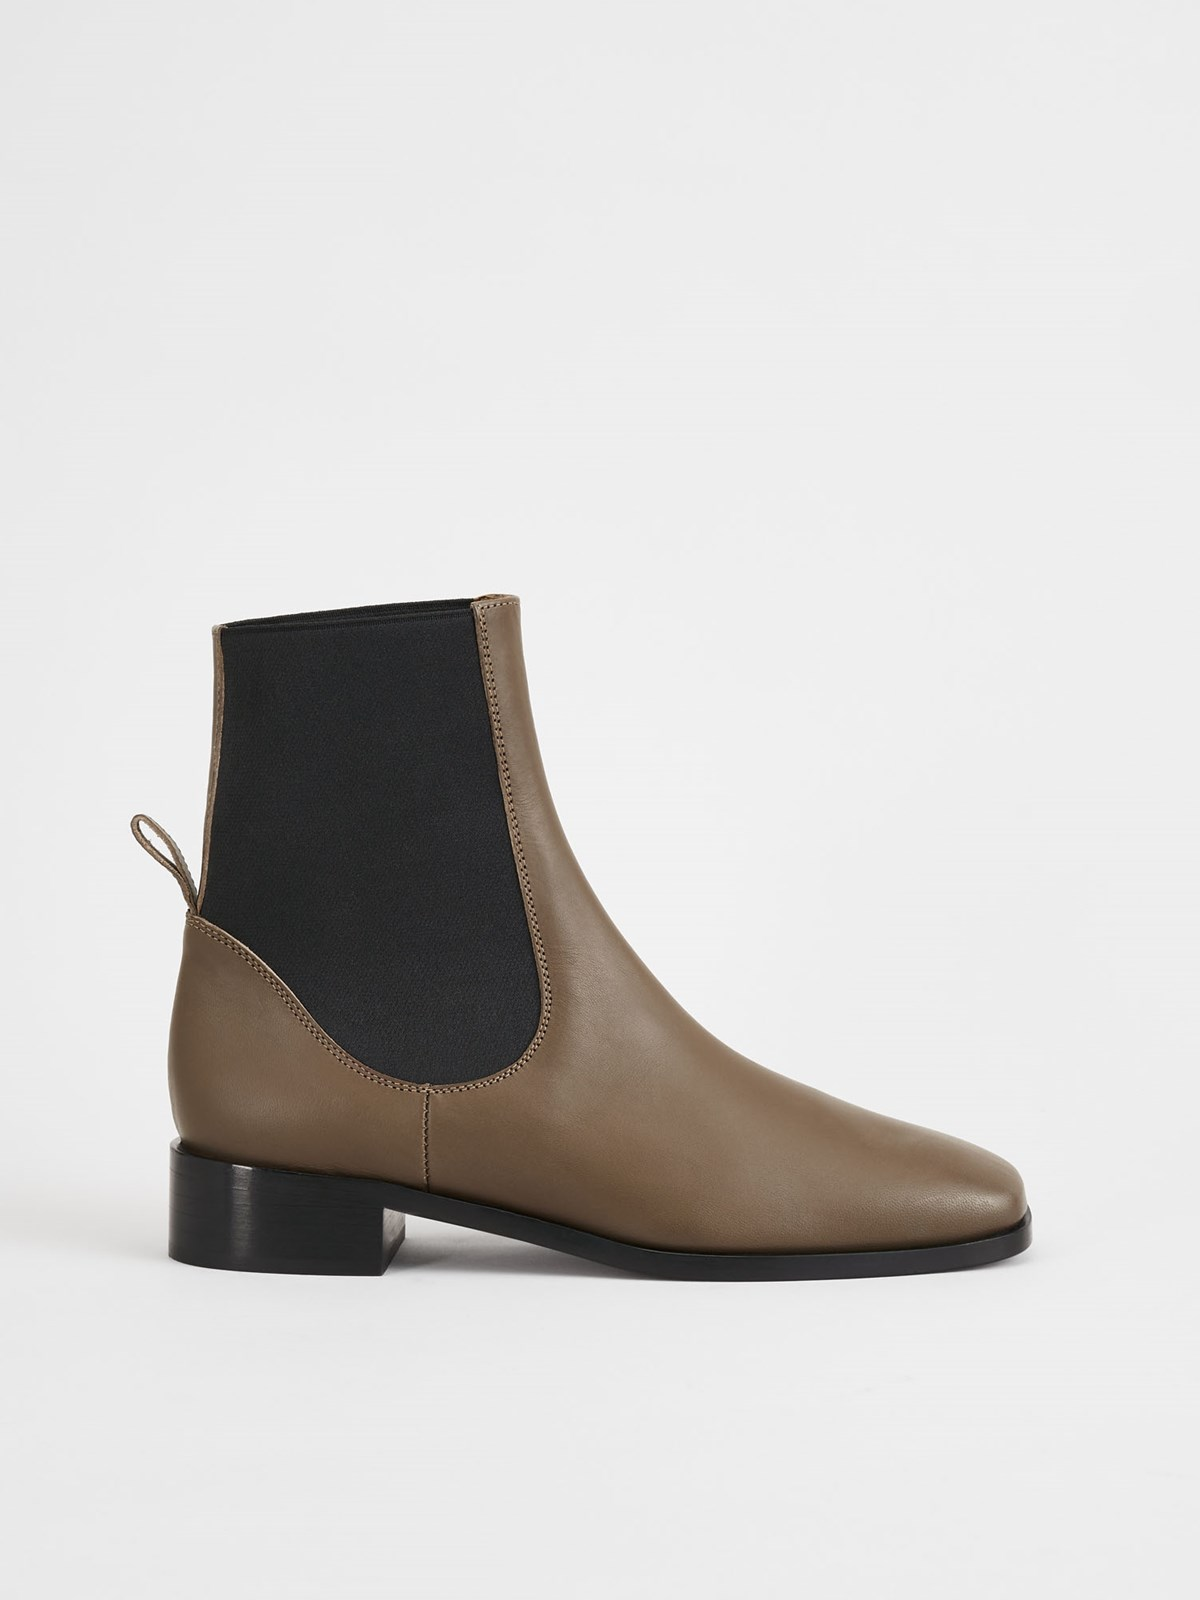 Vernazza Khaki Brown Ankle Boots